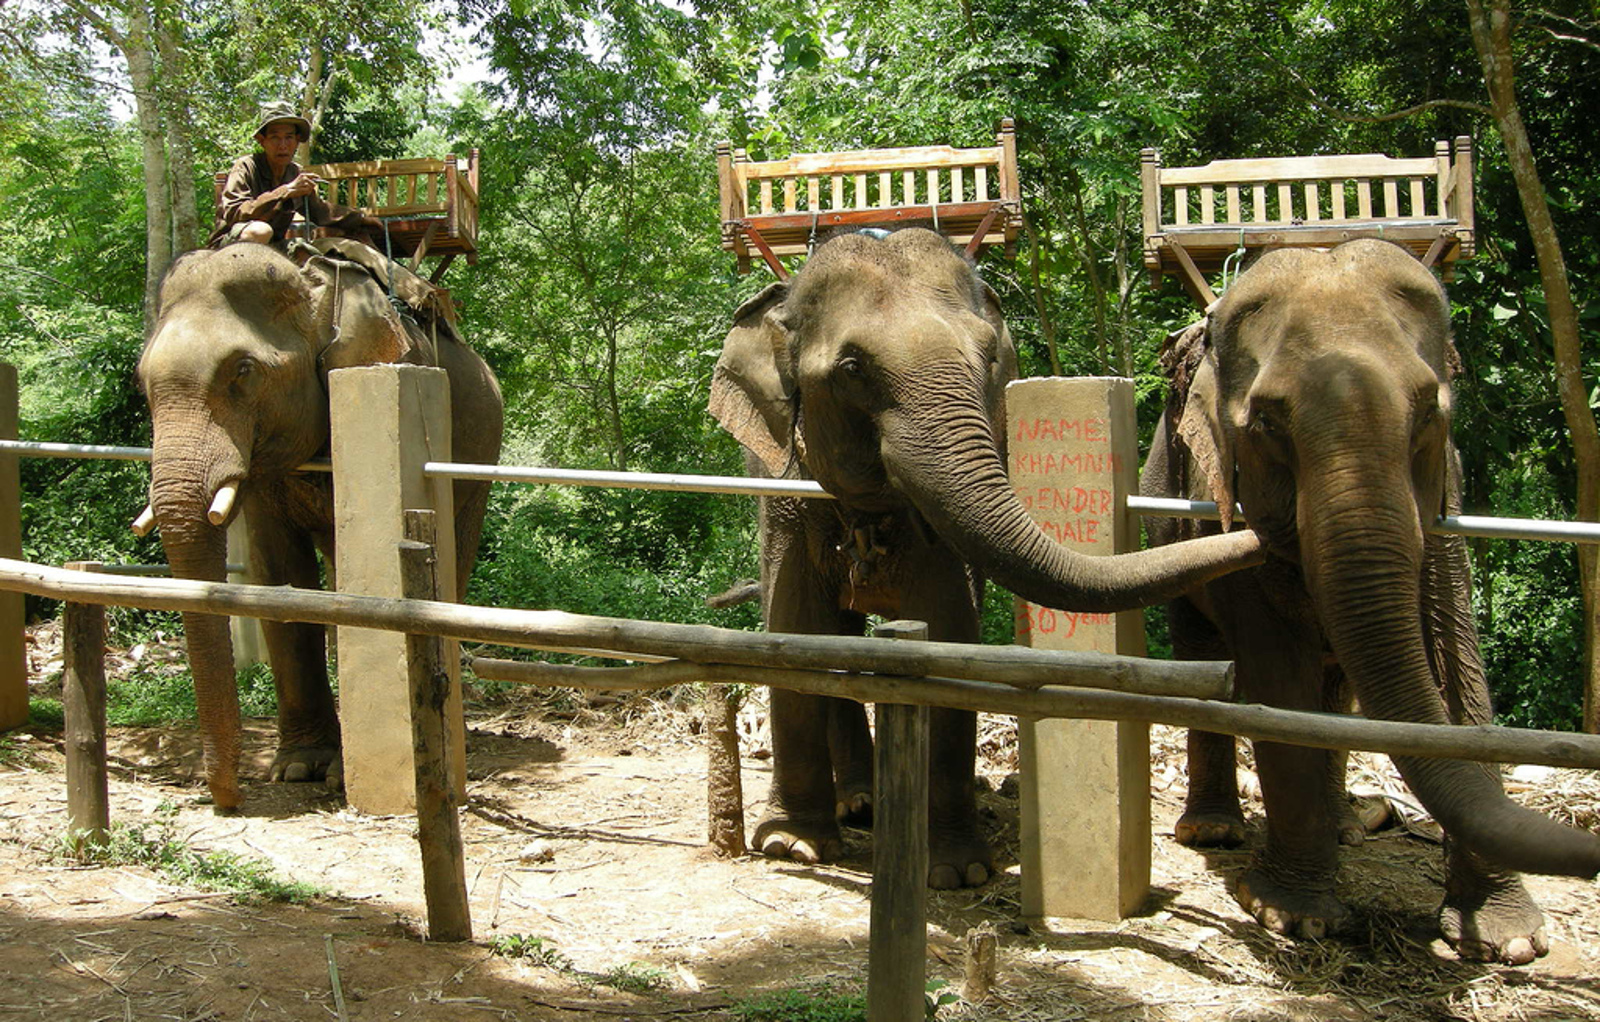 Don't Be Fooled Into Animal Abuse! Elephant Attractions to Avoid